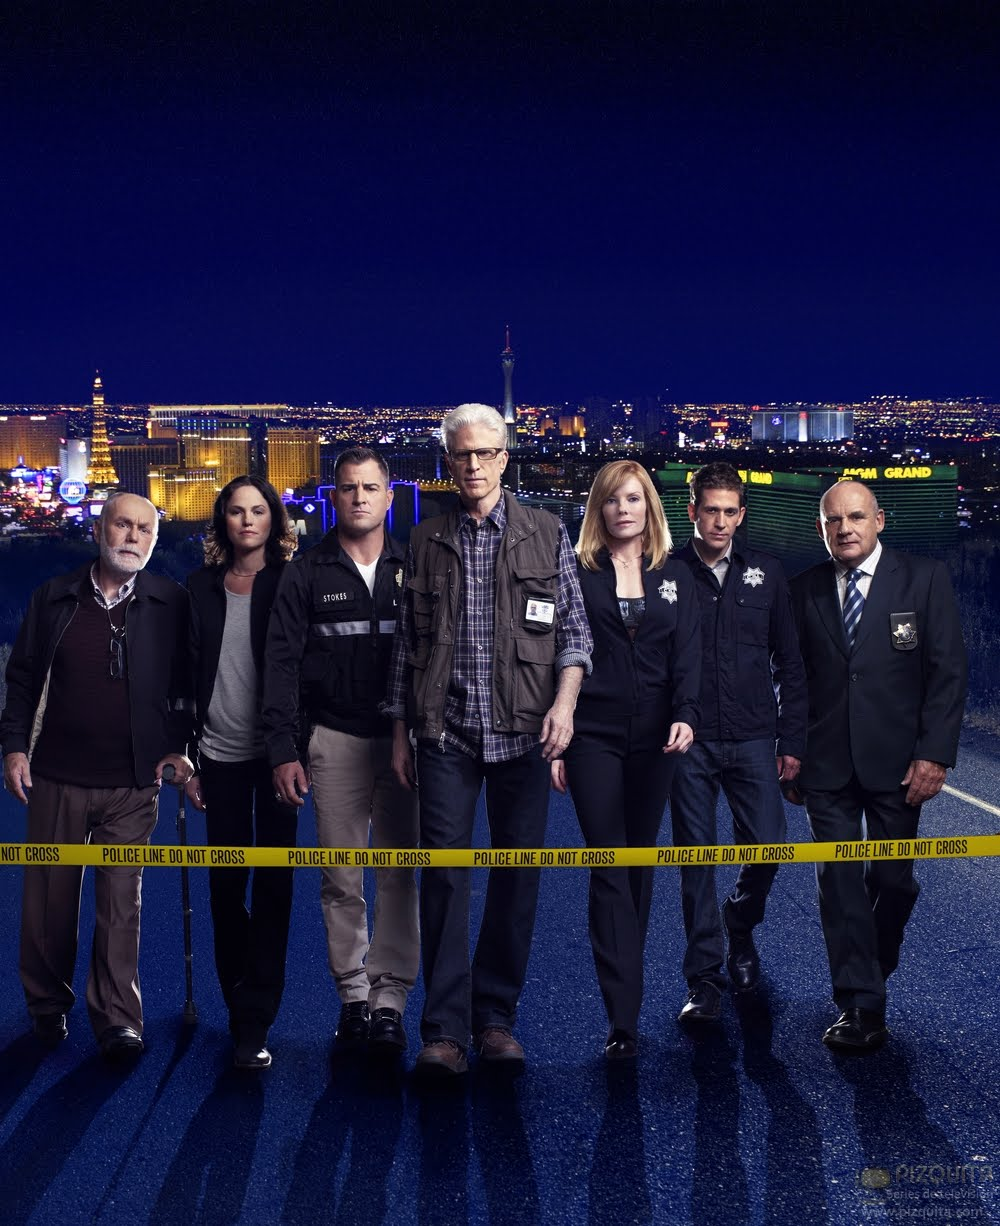 CSI: Las Vegas - Season 12 - Cast Promotional Photo